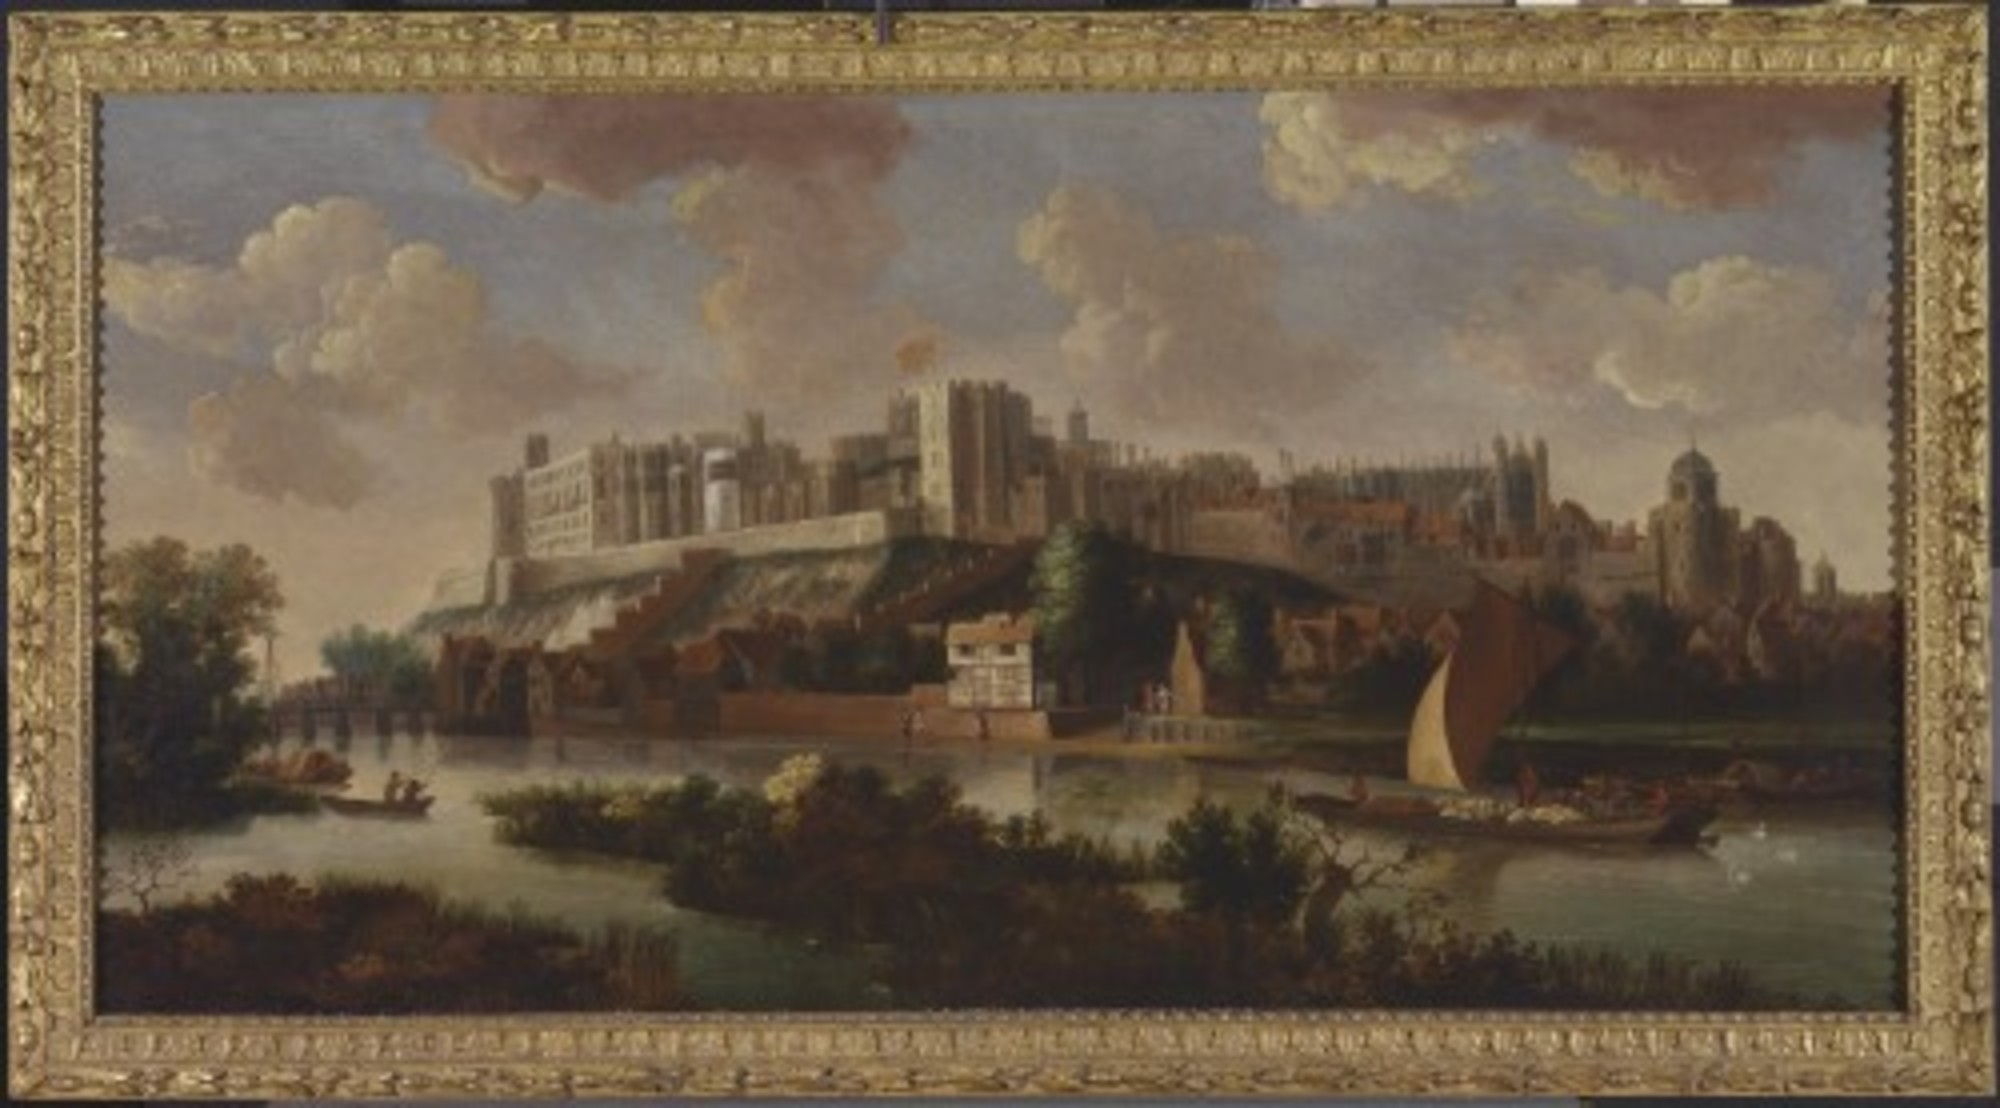 Windsor-Castle-Seen-from-the-Thames---Google-Art-Project.jpg